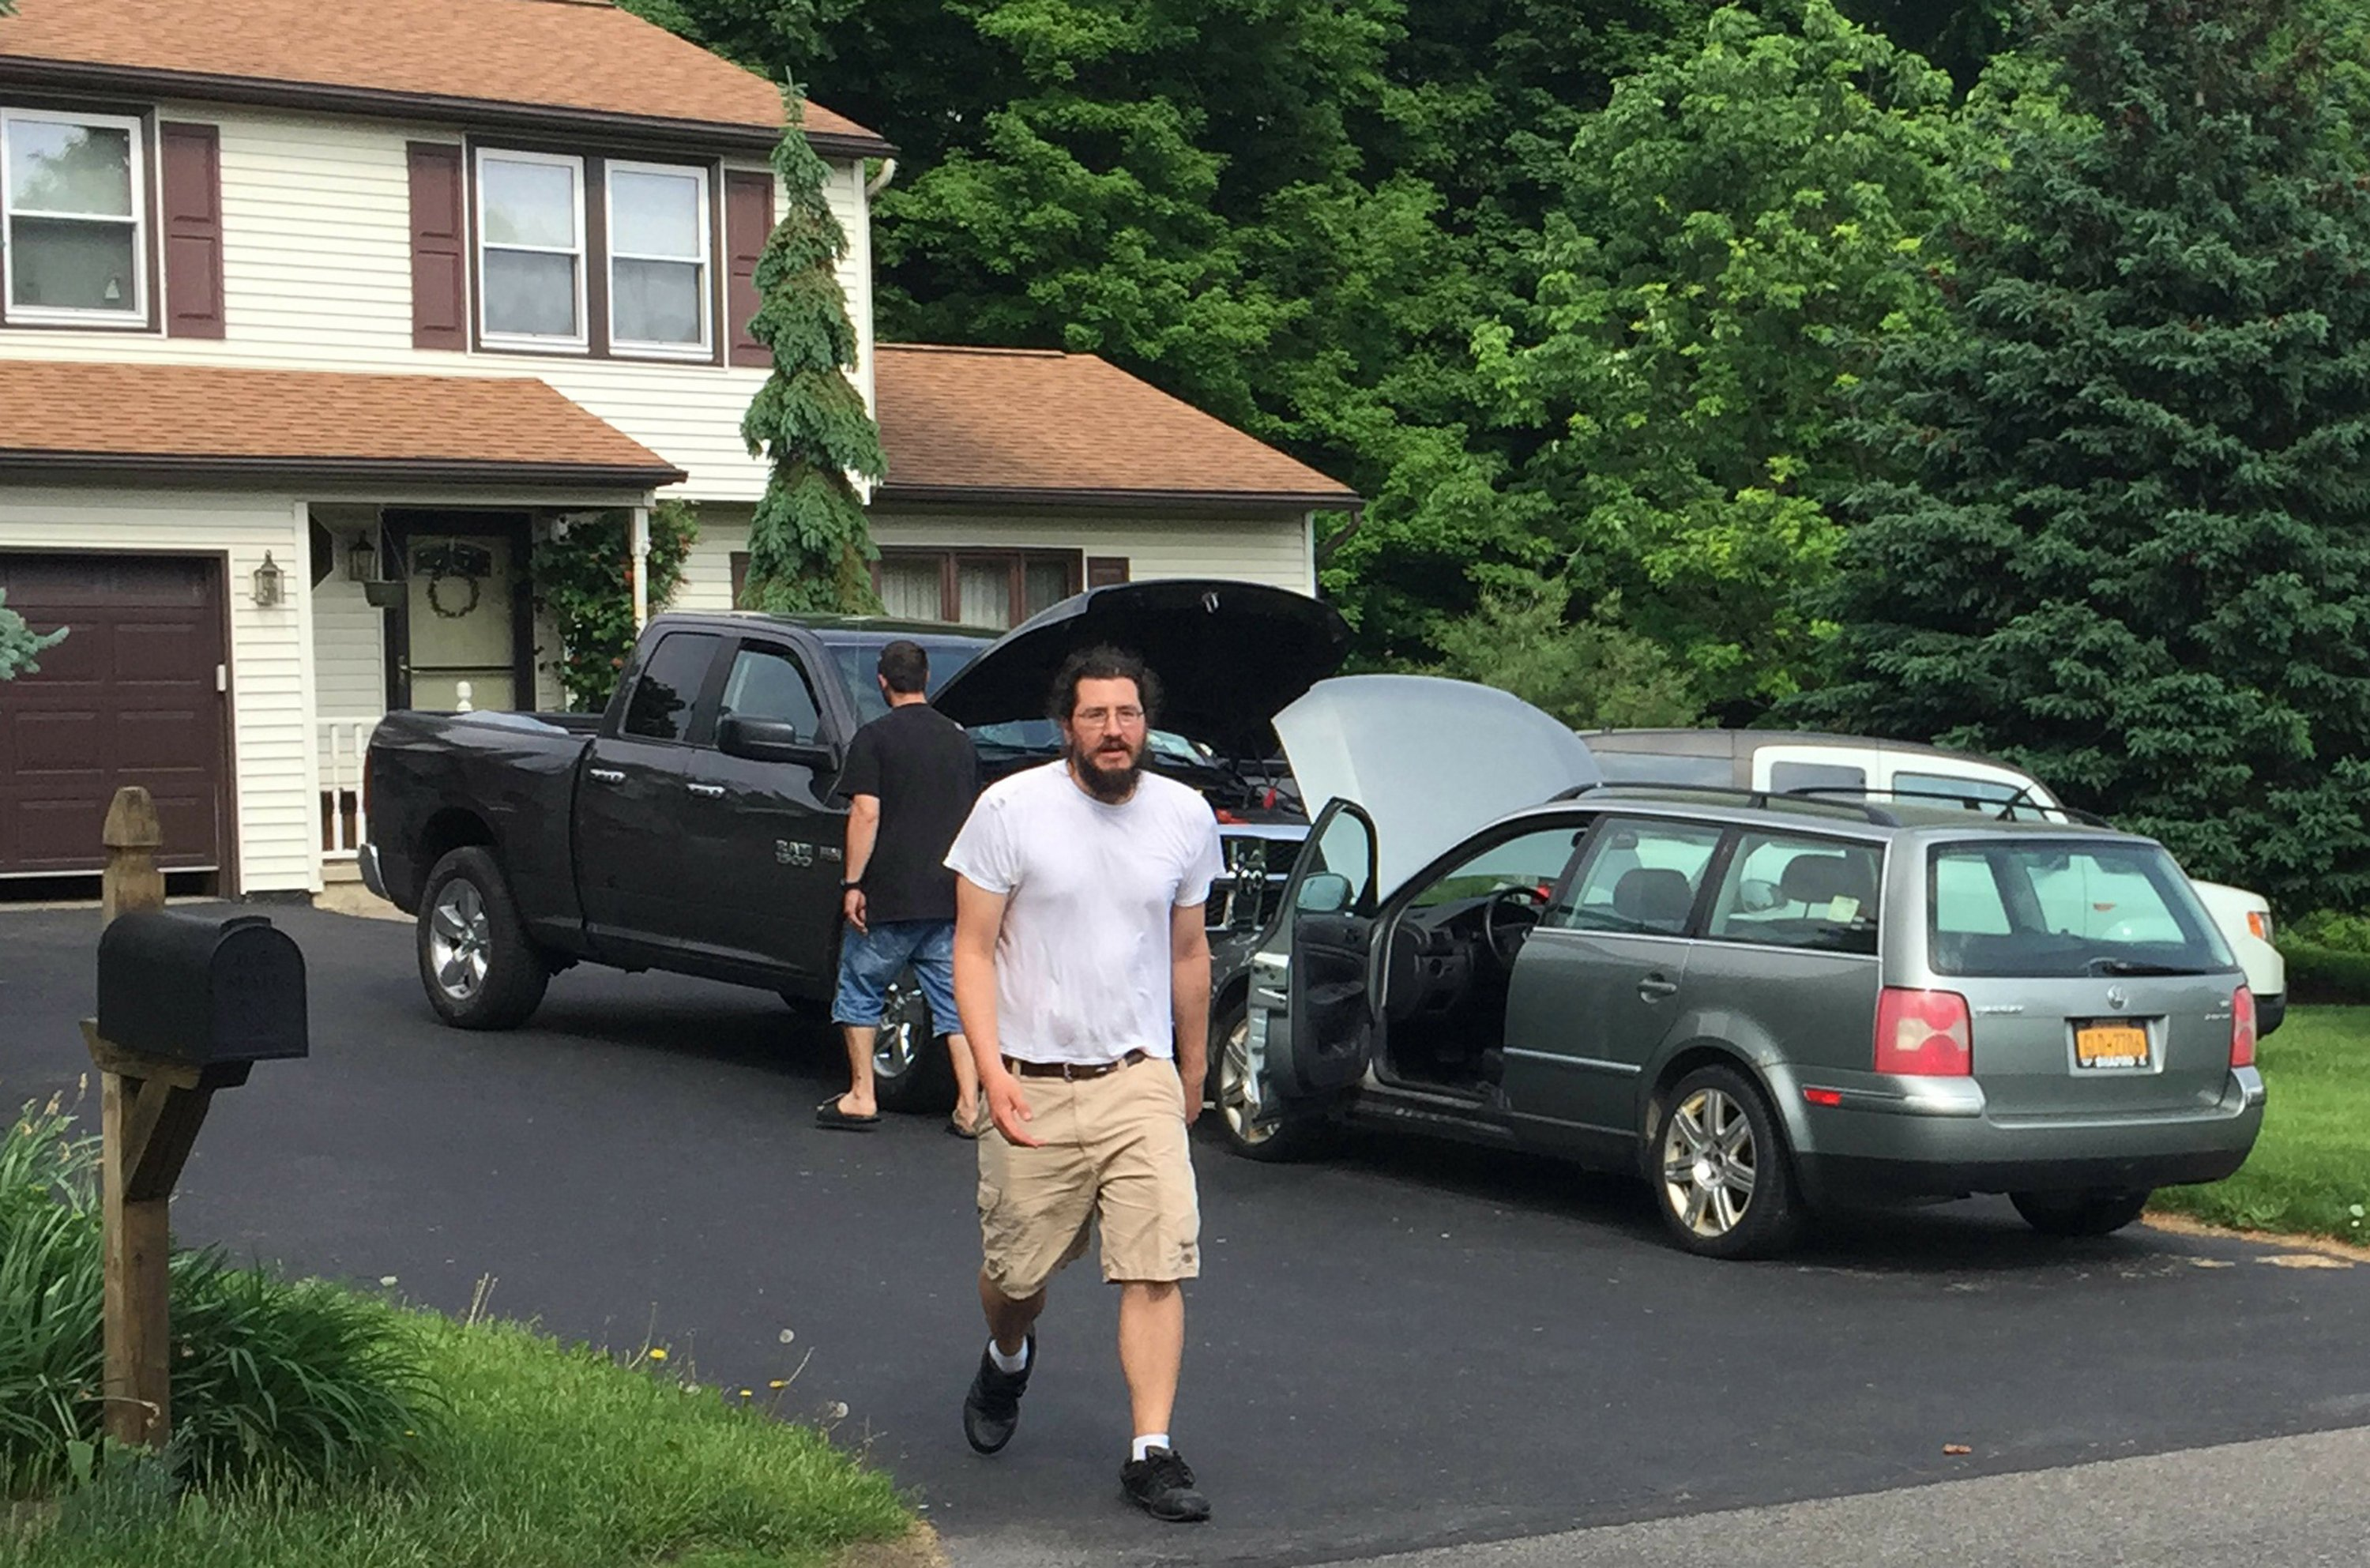 30-year-old leaves parents' home with help from Alex Jones